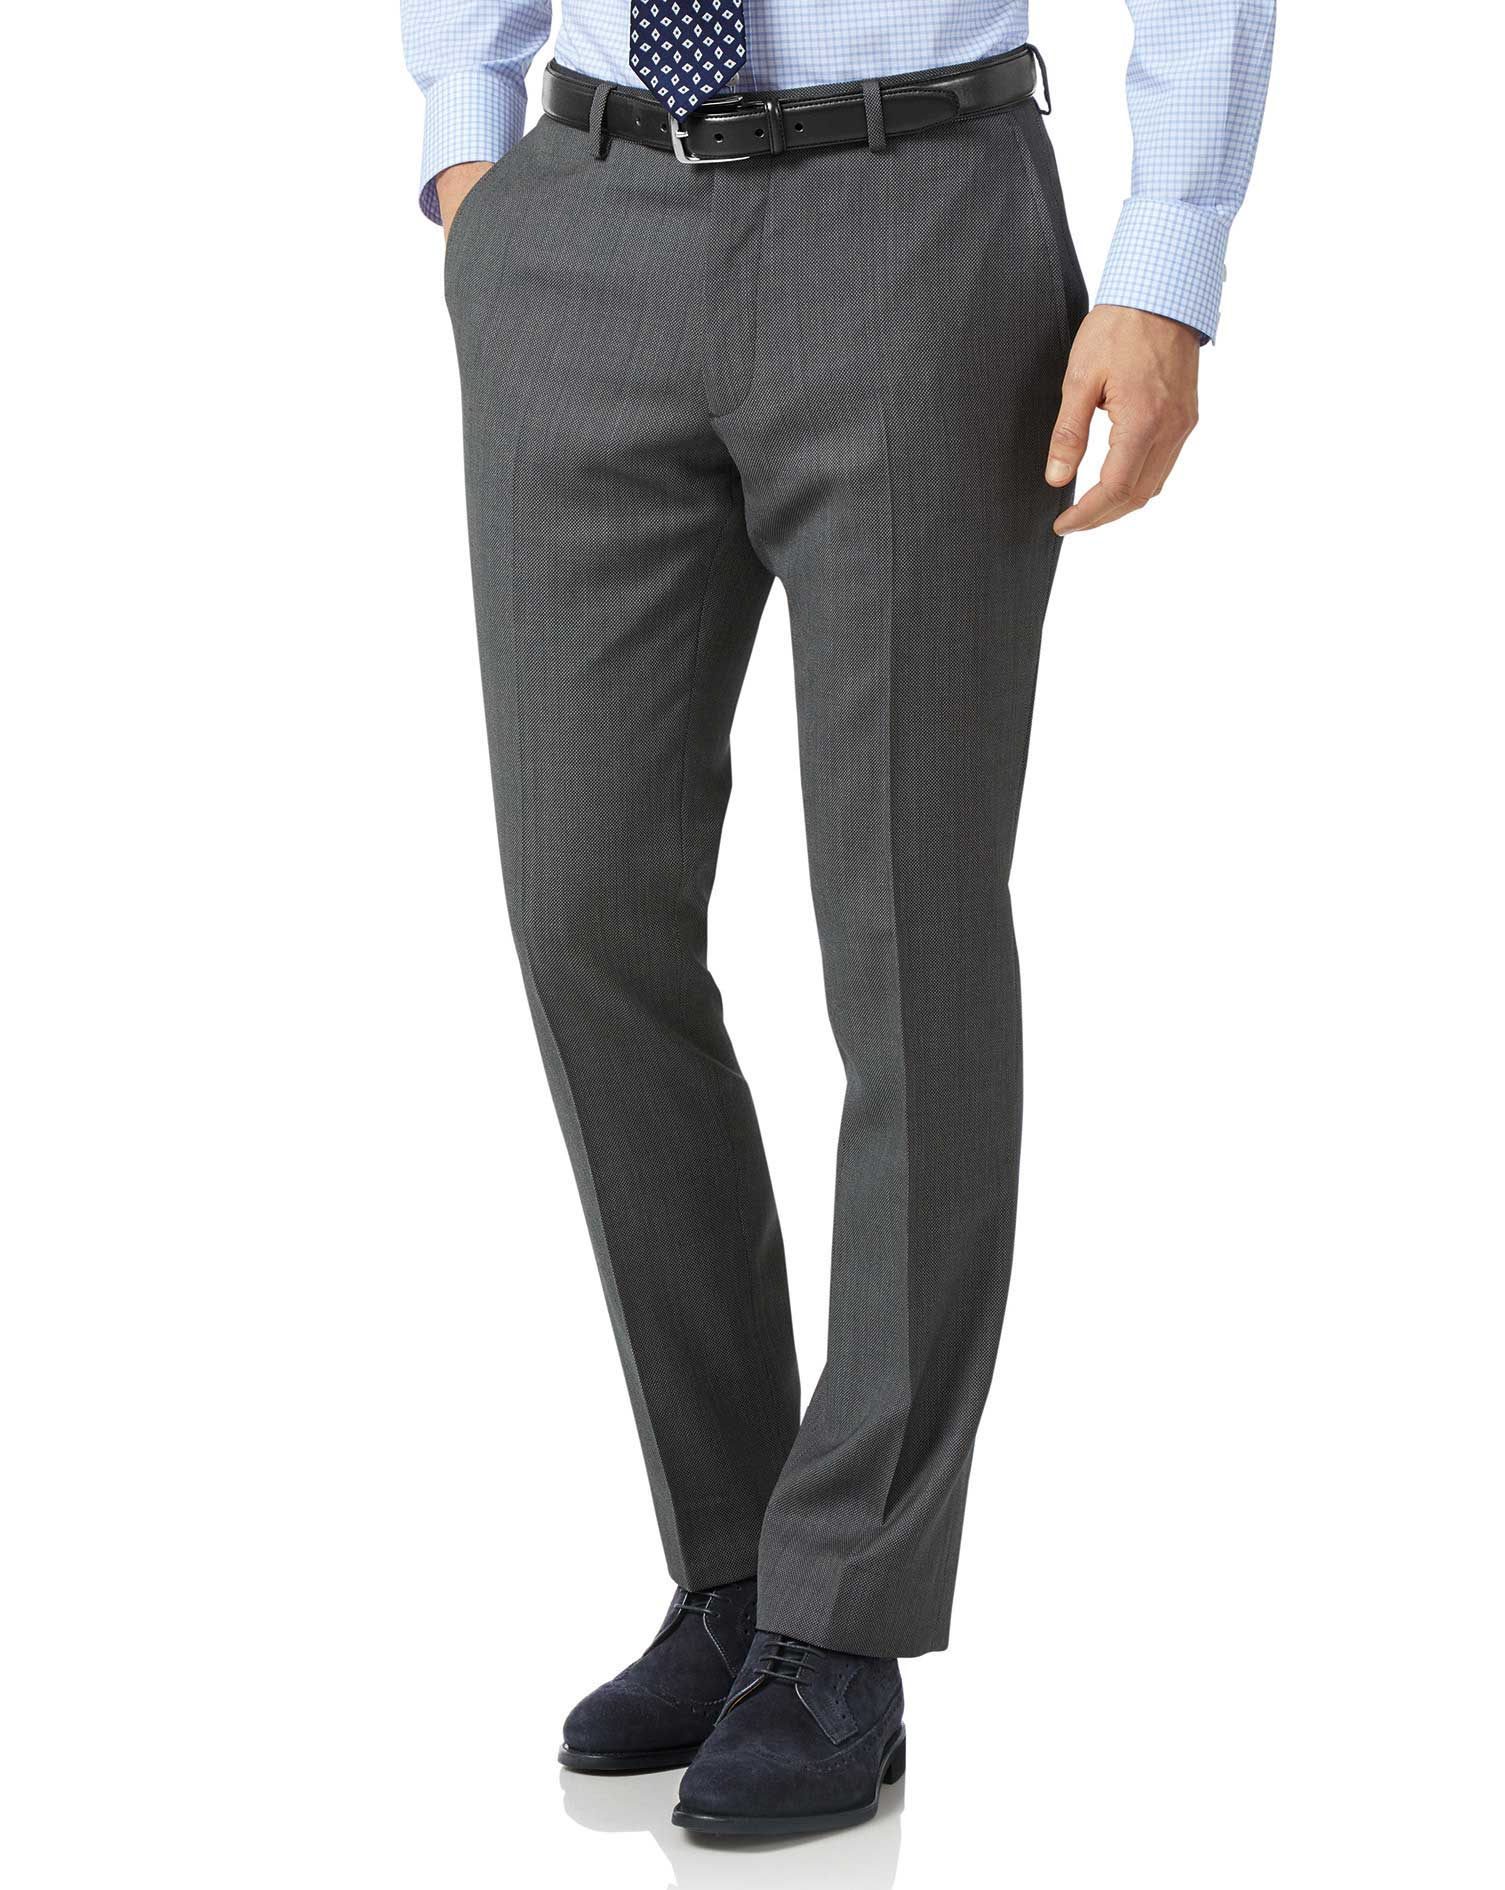 Grey Slim Fit Birdseye Travel Suit Trousers Size W34 L30 by Charles Tyrwhitt